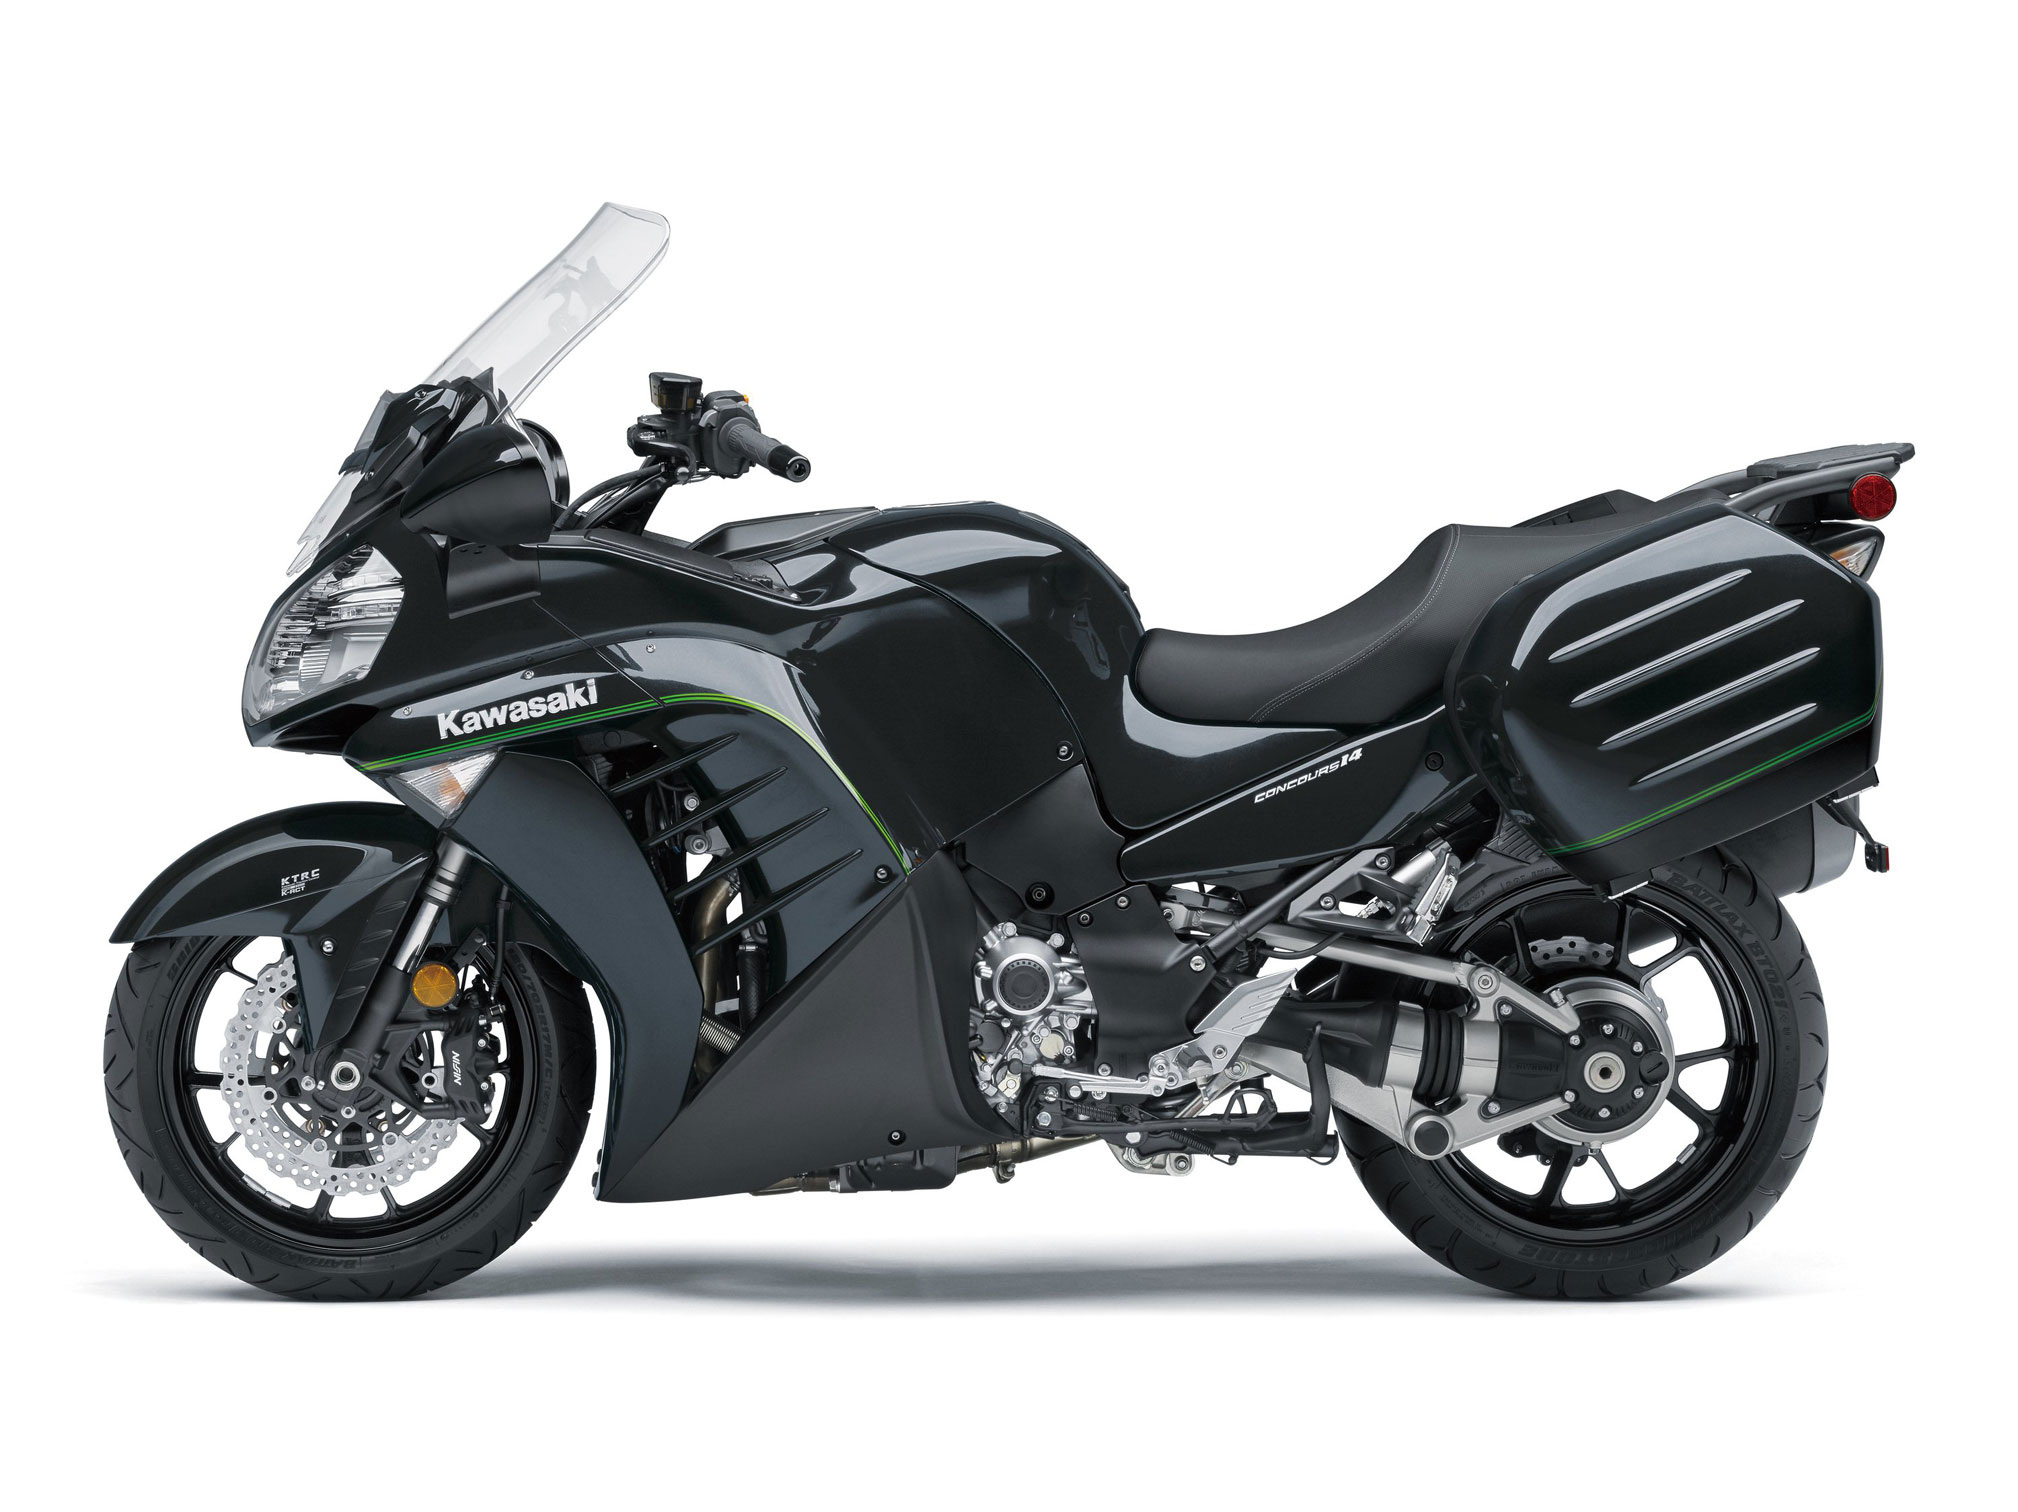 2018 Kawasaki Concours 14 ABS Review • TotalMotorcycle